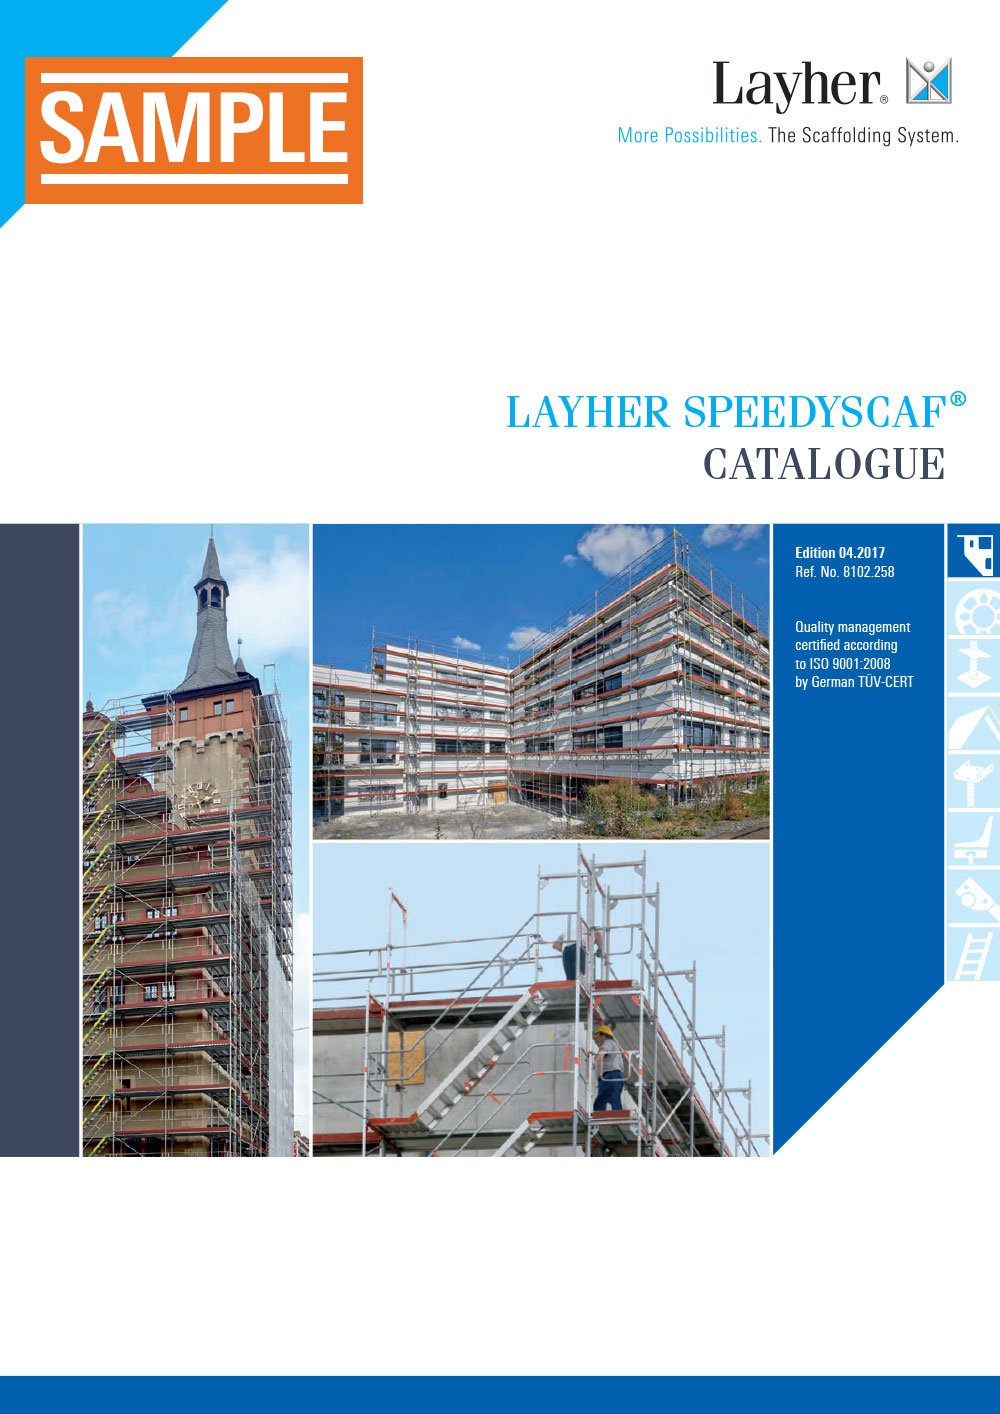 Layher SpeedyScaf Catalogue